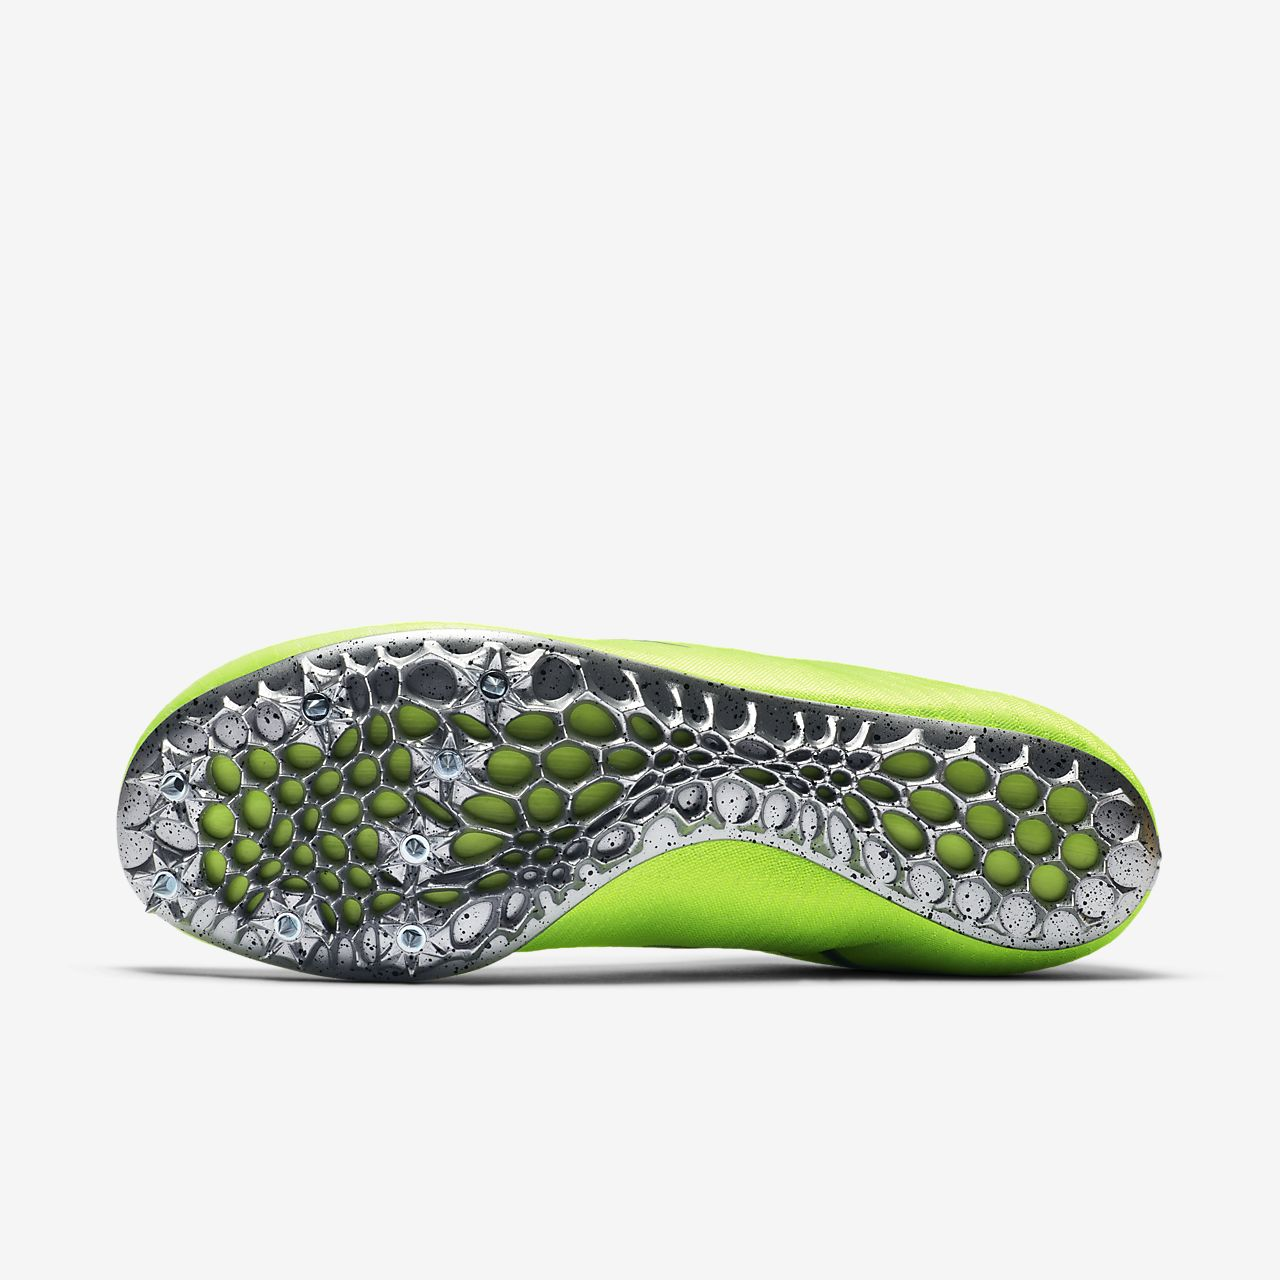 Superfly Nike Nike Elite Spike Superfly Elite Spike Racing Racing XZuikP